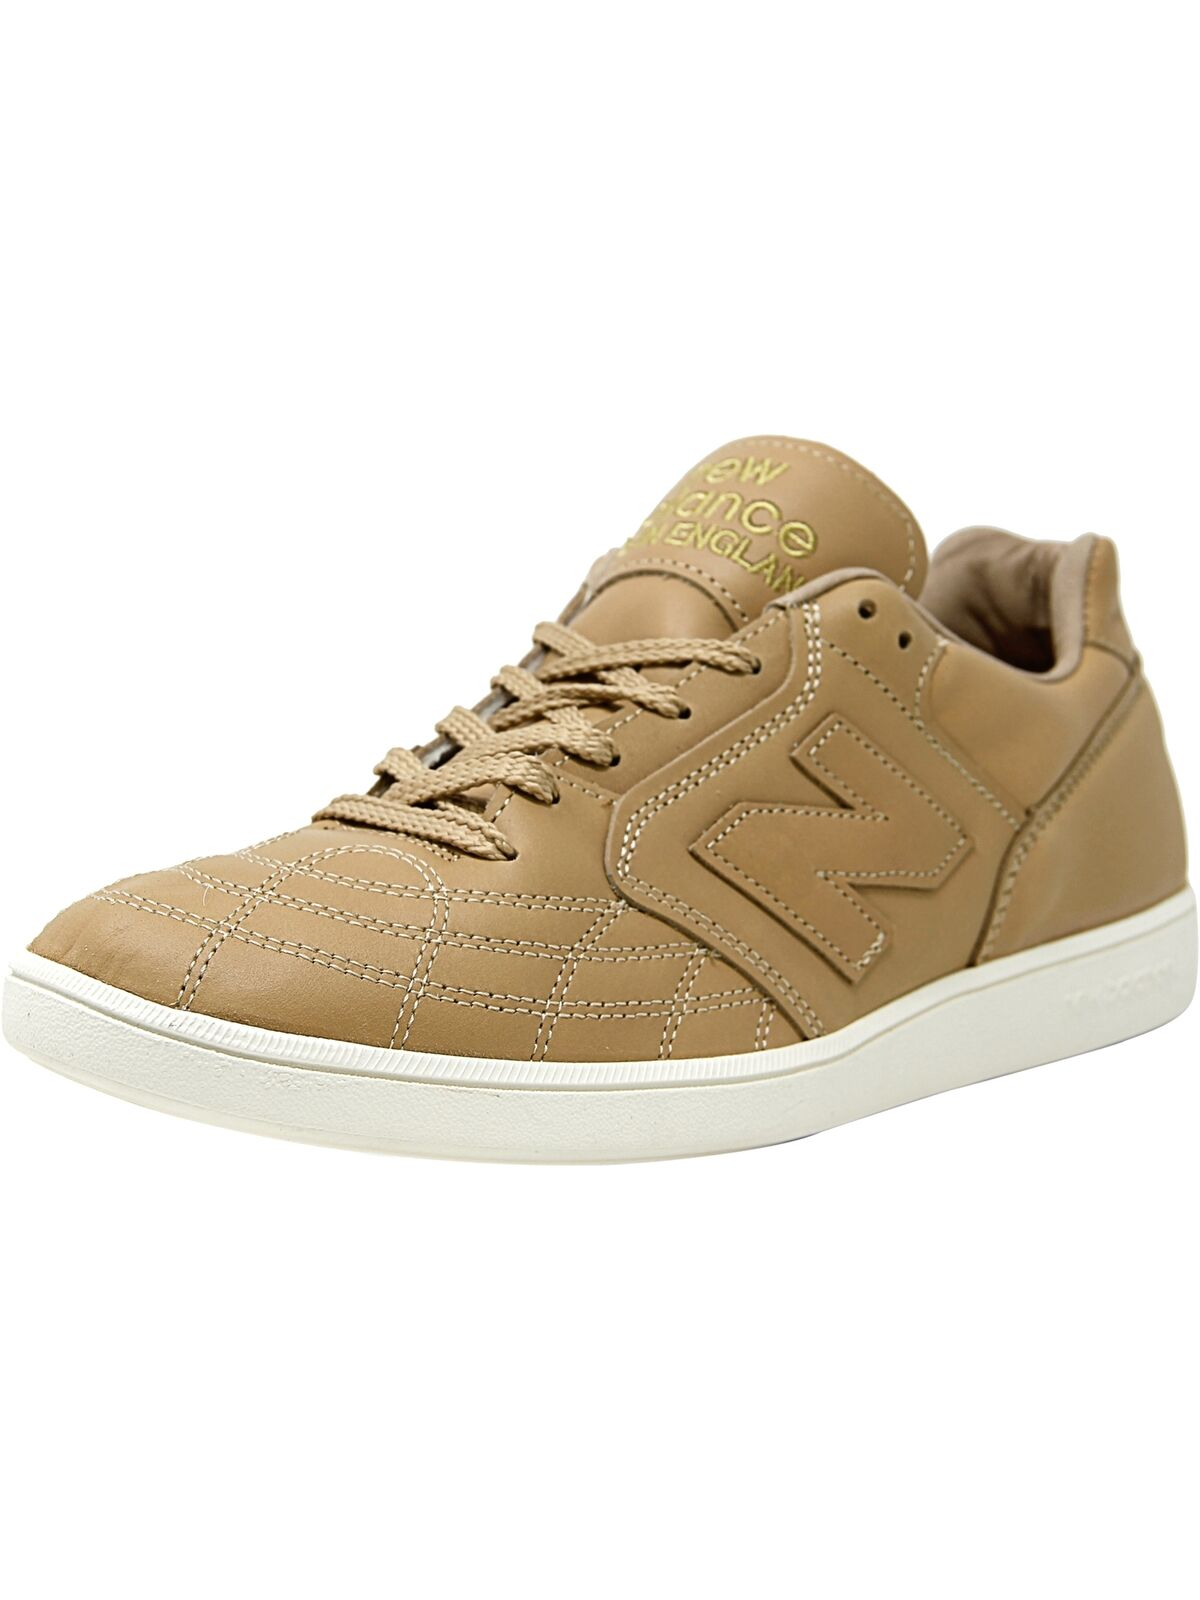 New Balance Men's Epictr Ankle-High Leather Fashion Sneaker